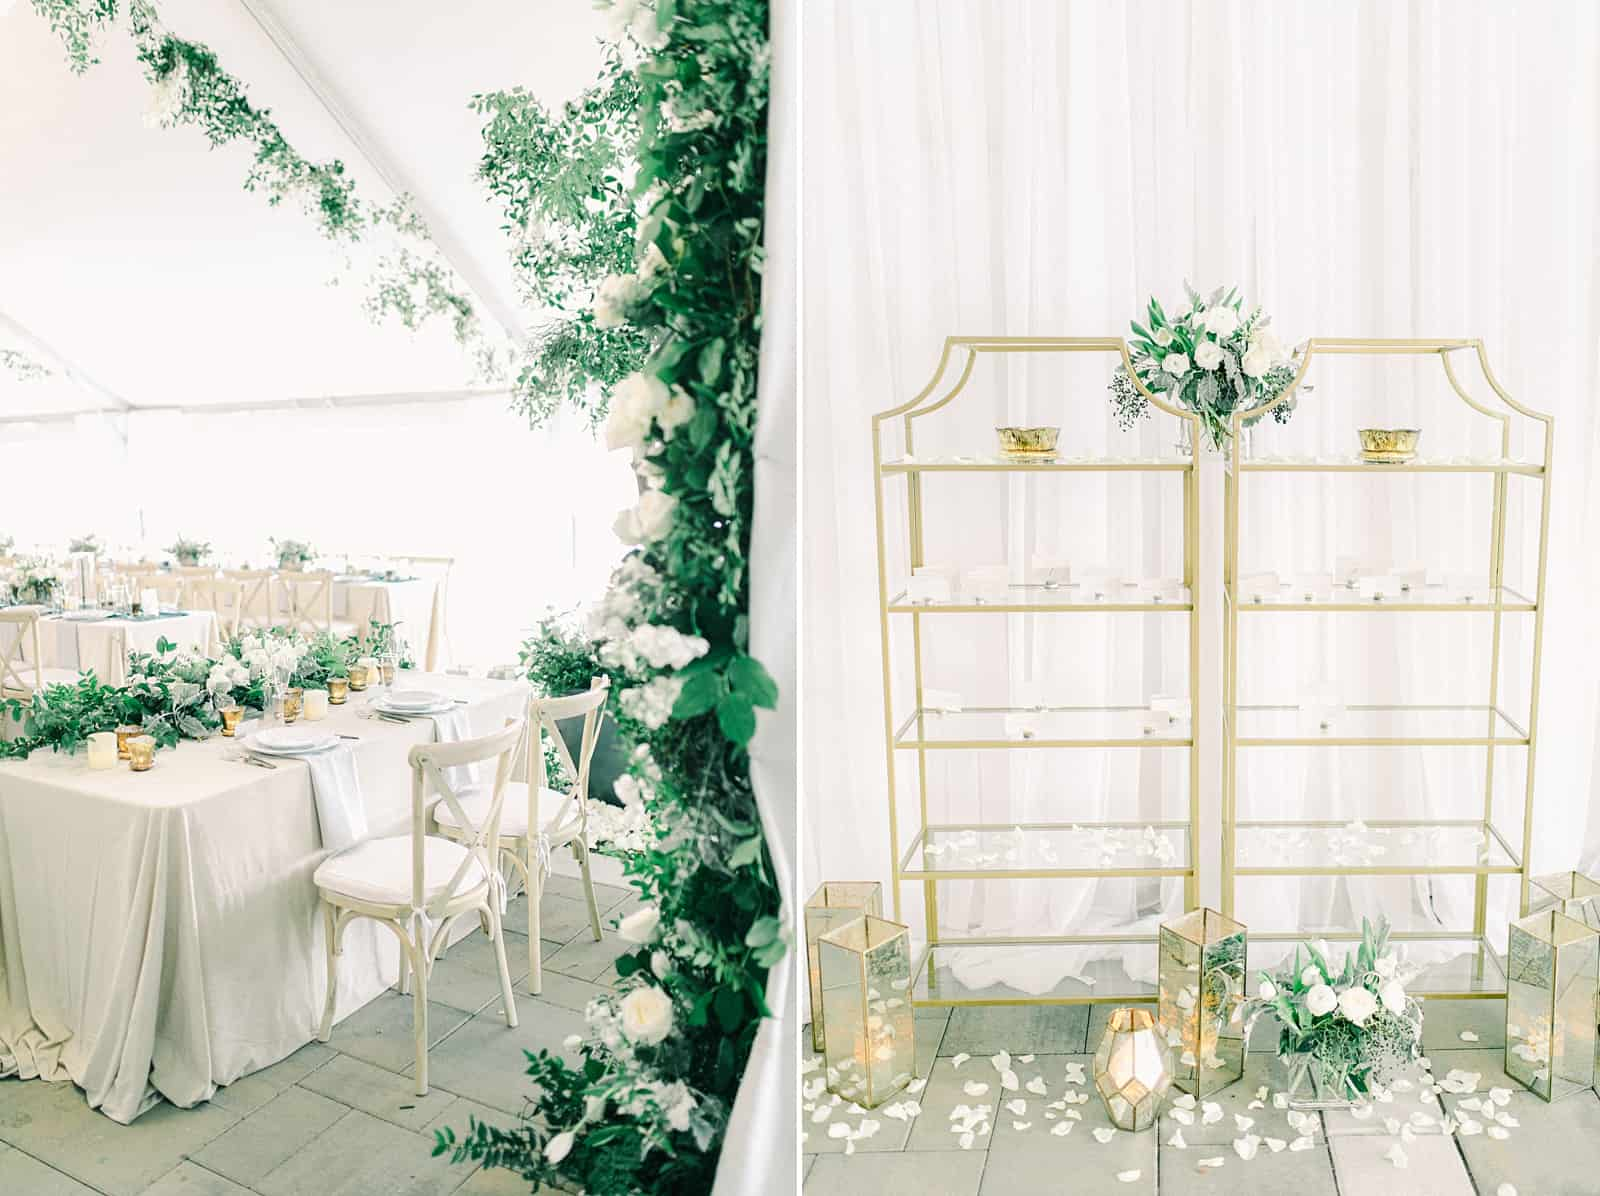 Luxury winter wedding at Willowbridge Estate in Boise, Idaho, white tent reception with greenery floral garland with white roses and tables with centerpieces